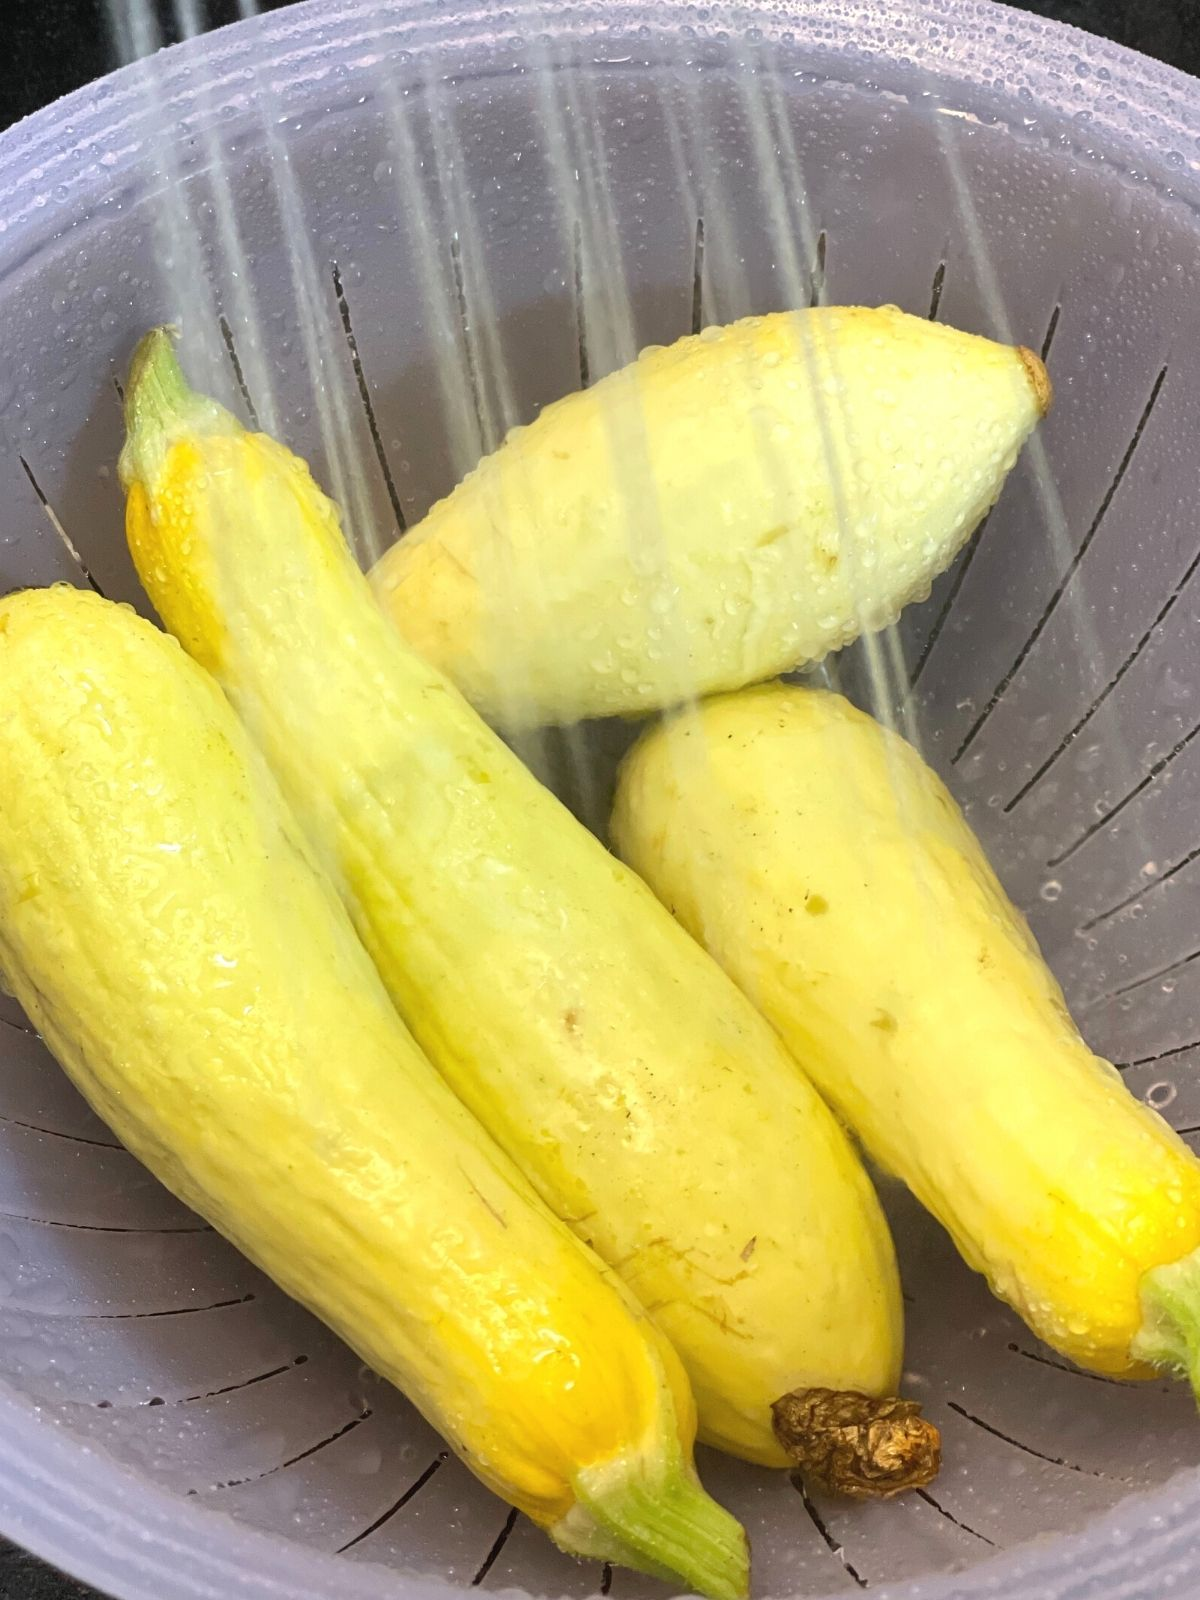 Yellow summer squash in a purple colander being rinsed off in the sink.